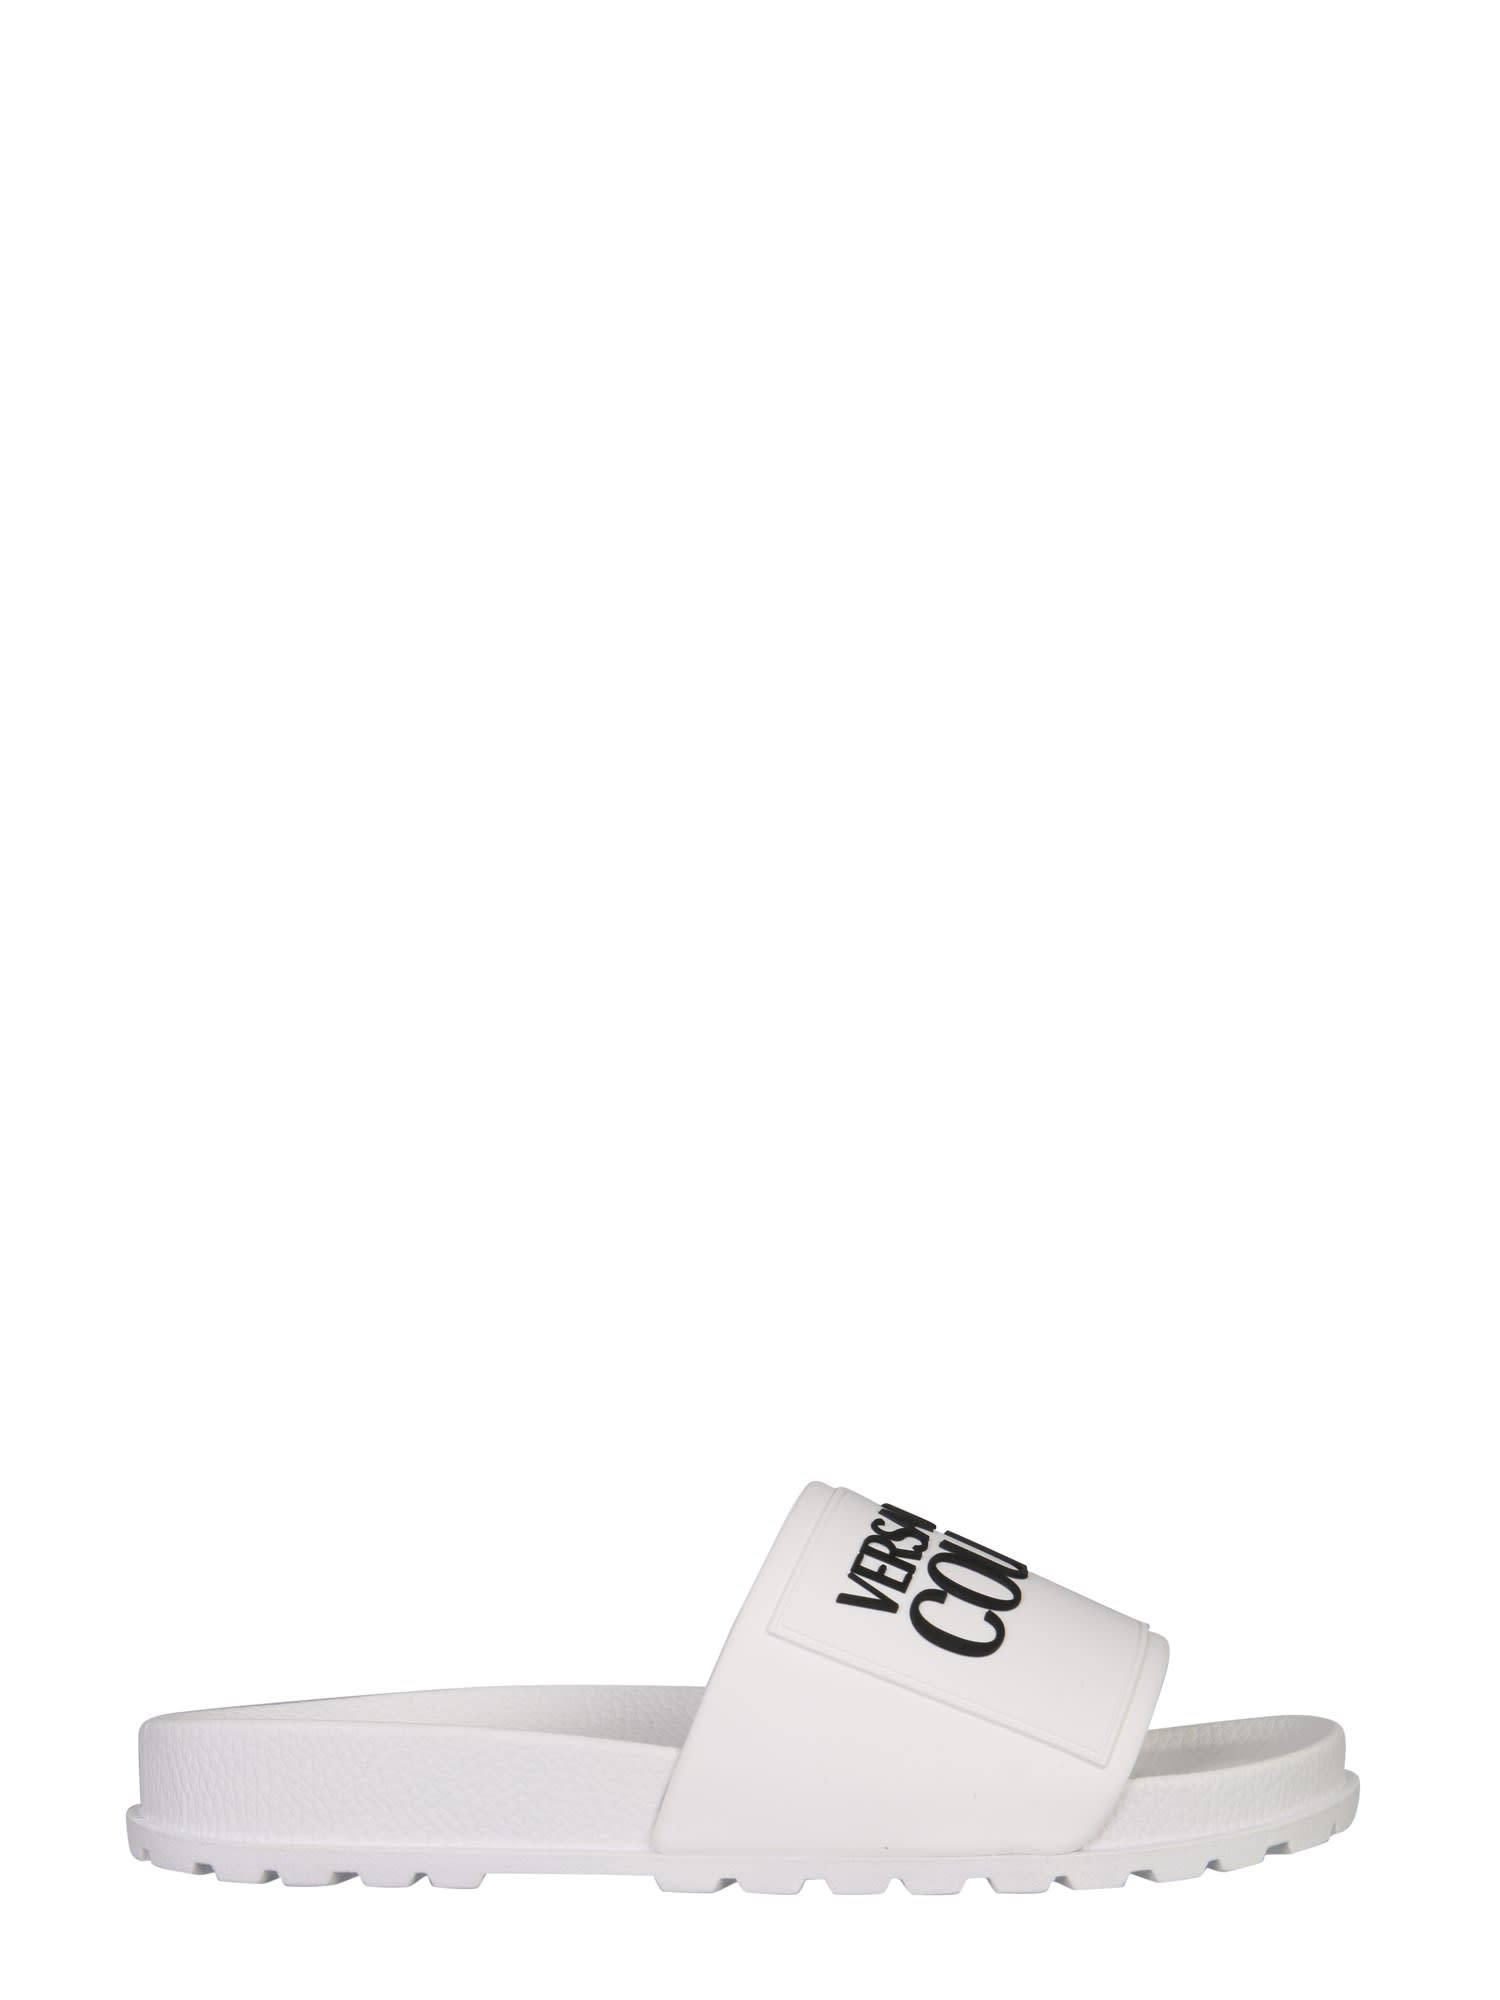 Versace Jeans Couture Low heels SLIDE SANDALS WITH LOGO